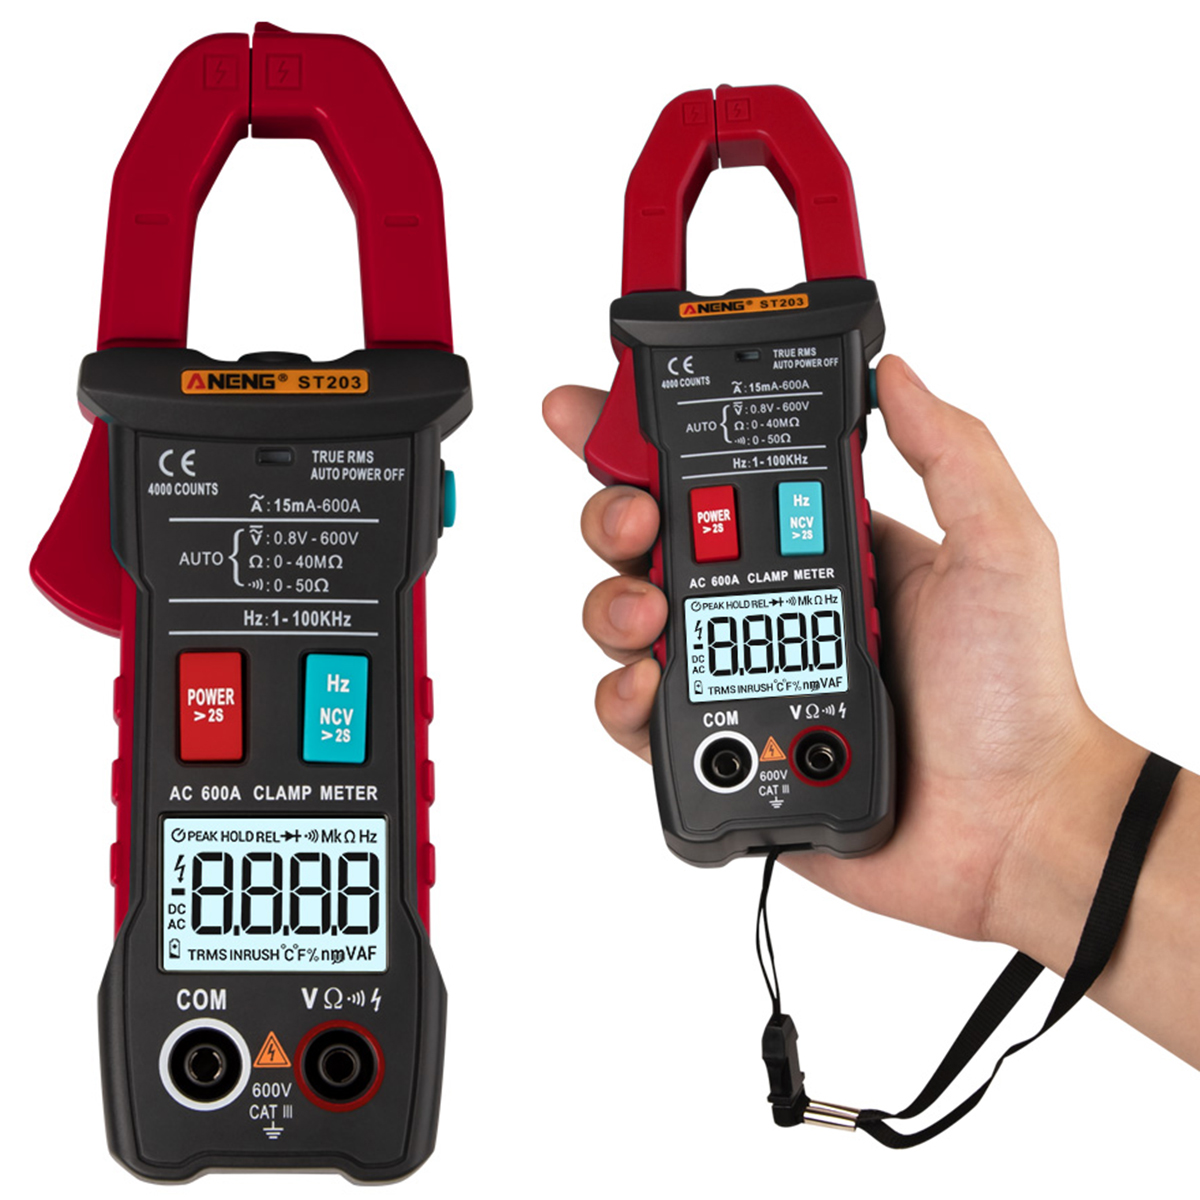 ANENG <font><b>ST203</b></font> Digital LCD Clamp Meter Multimeter 4000counts 3/4-Digit Automatic Digital Instrument DC/AC Clamp Meters Voltmeter image